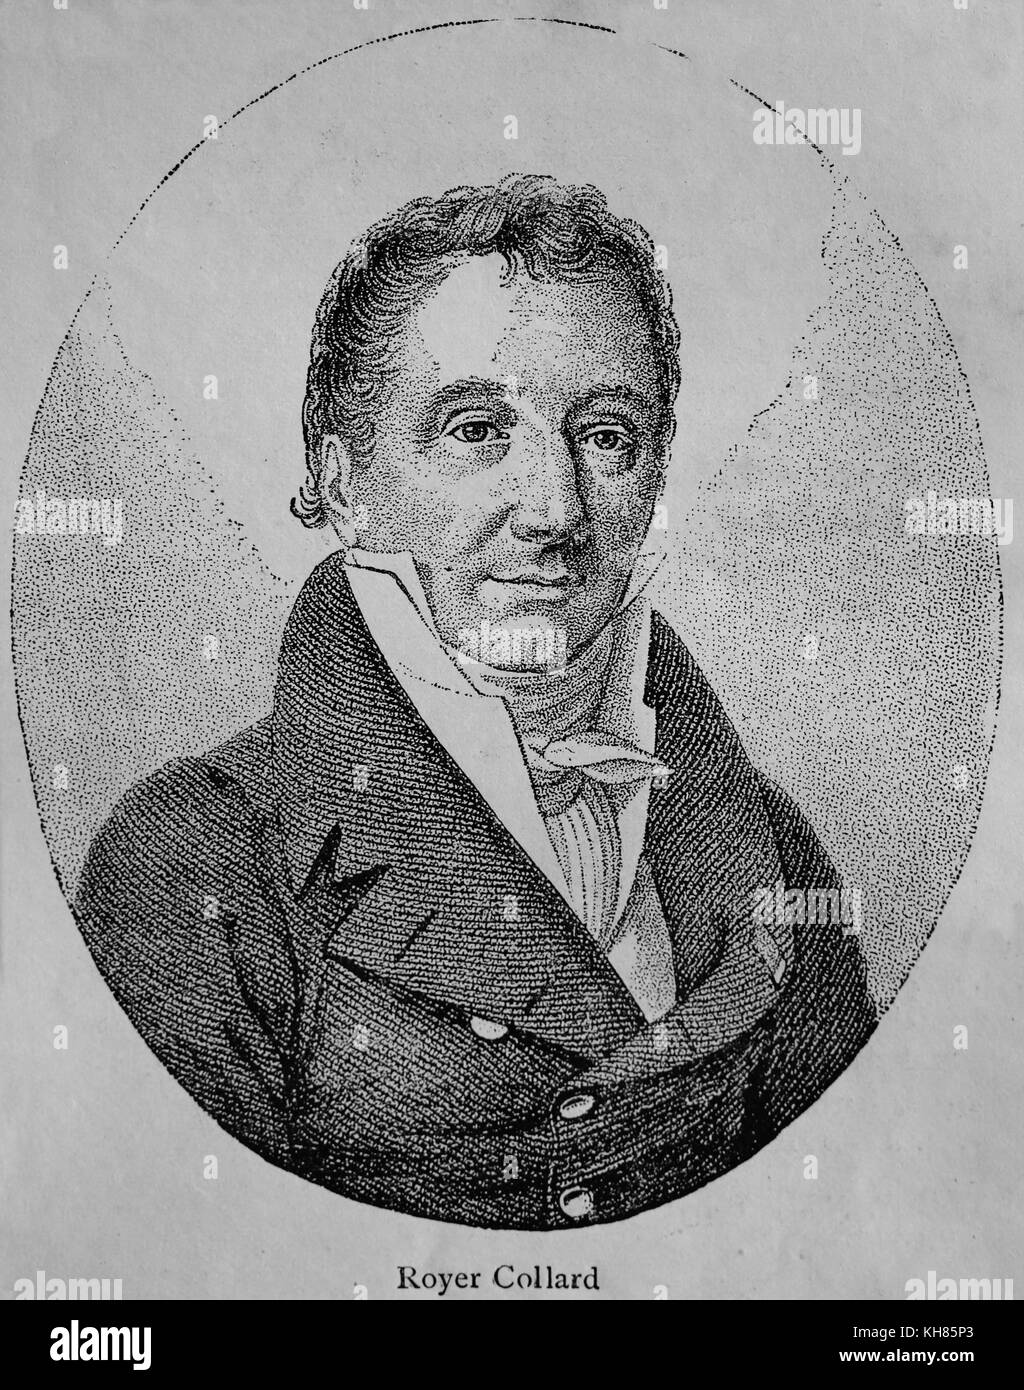 Pierre Paul Royer-Collard (1763-1845). French statesman and philosopher, leader of the Doctrinaires group. Engraving. - Stock Image